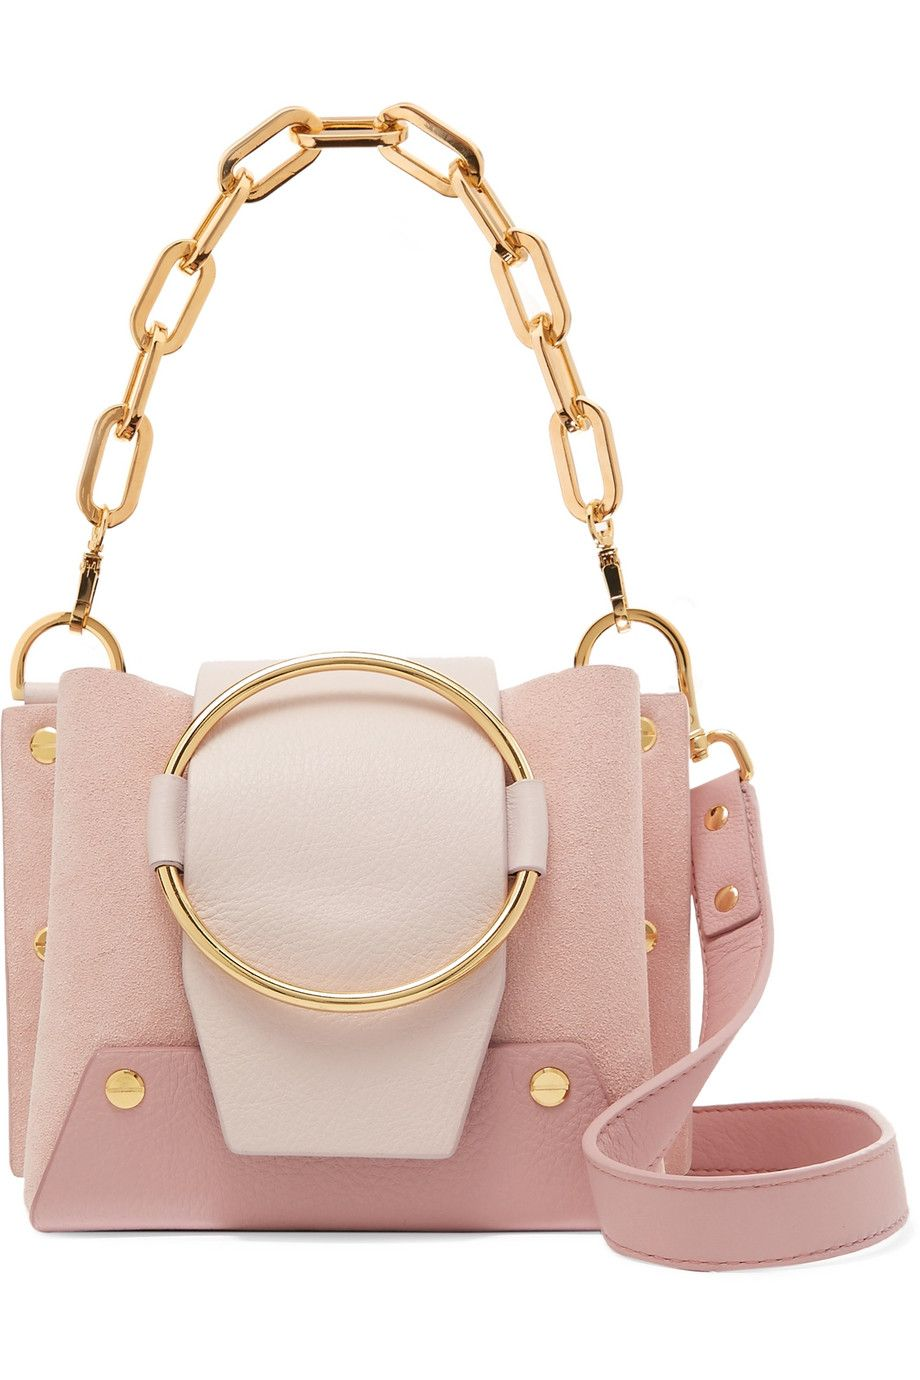 Delila Mini Color-block Textured-leather Shoulder Bag - White Yuzefi Prices Free Shipping Fast Delivery Clearance Shop Offer Brand New Unisex Online Ad2qdxTTbG